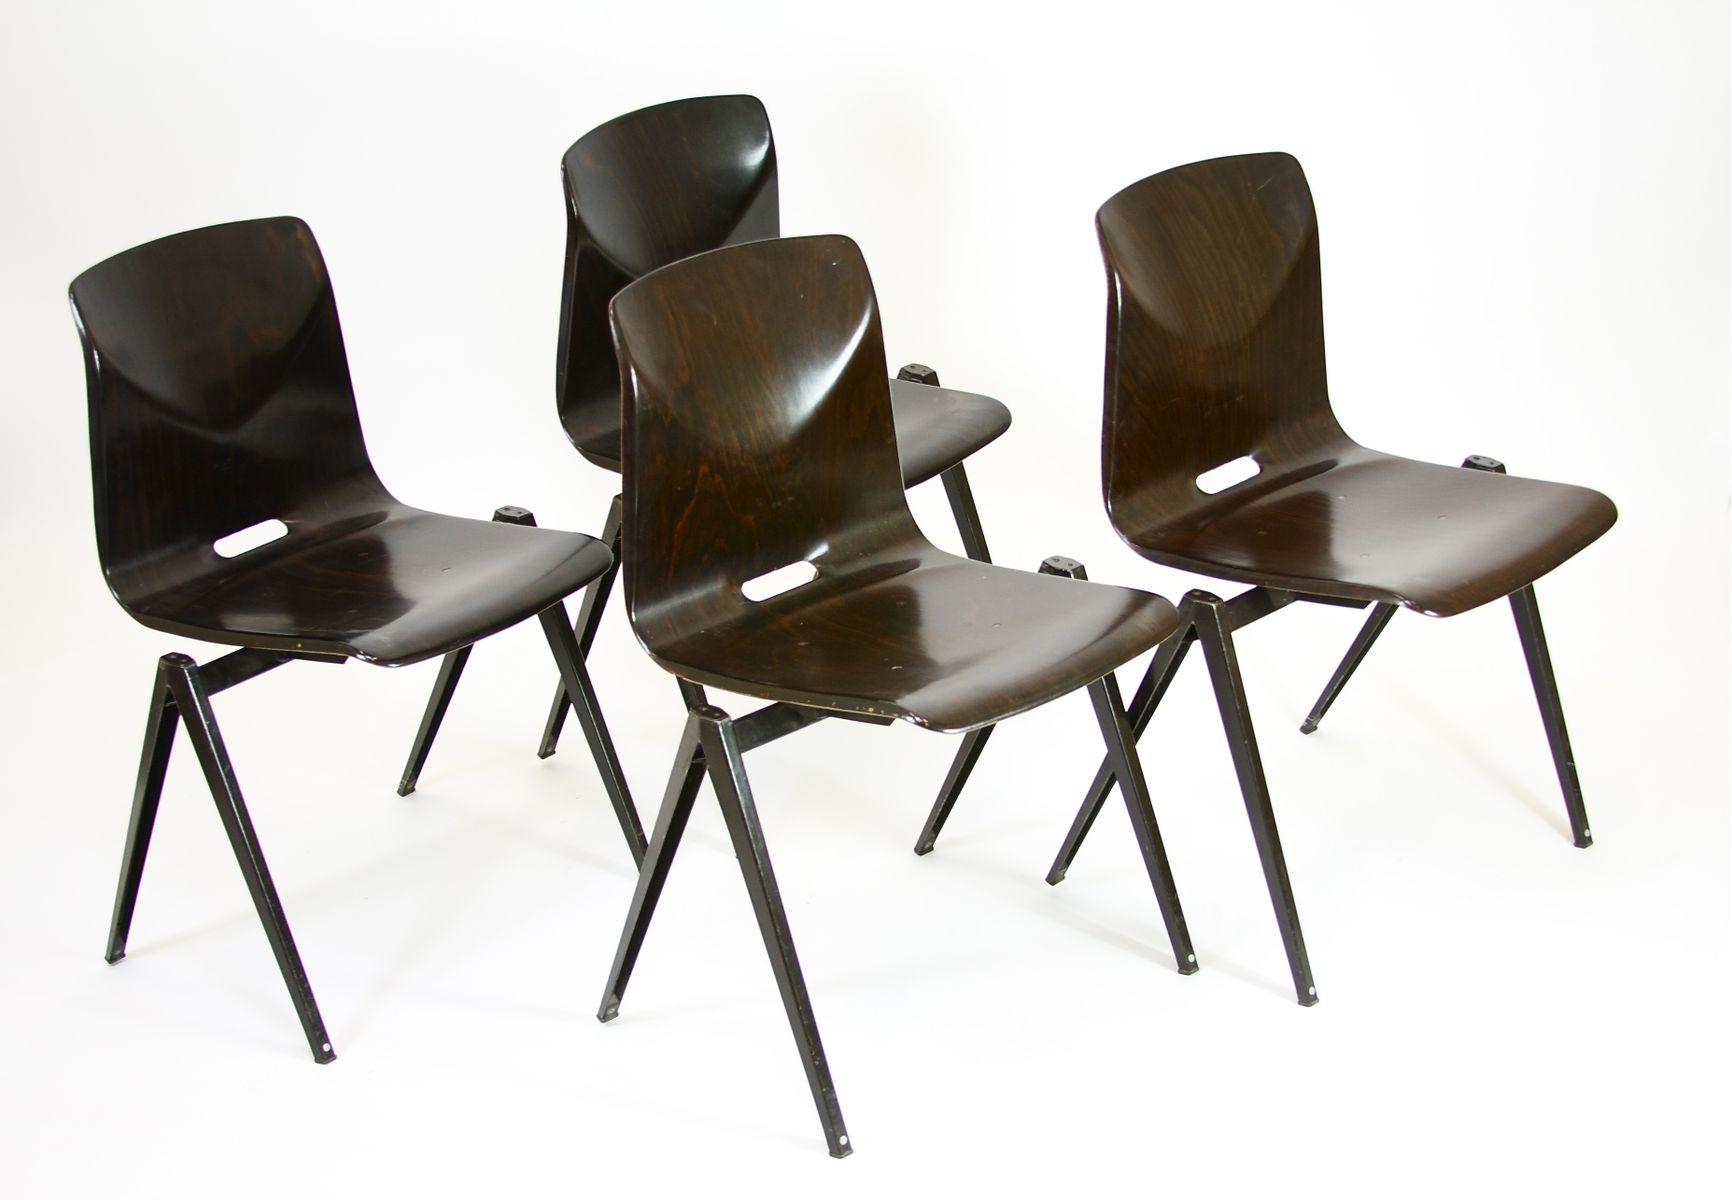 Vintage Belgian Industrial Chairs 1970s Set of 4 for sale at Pamono